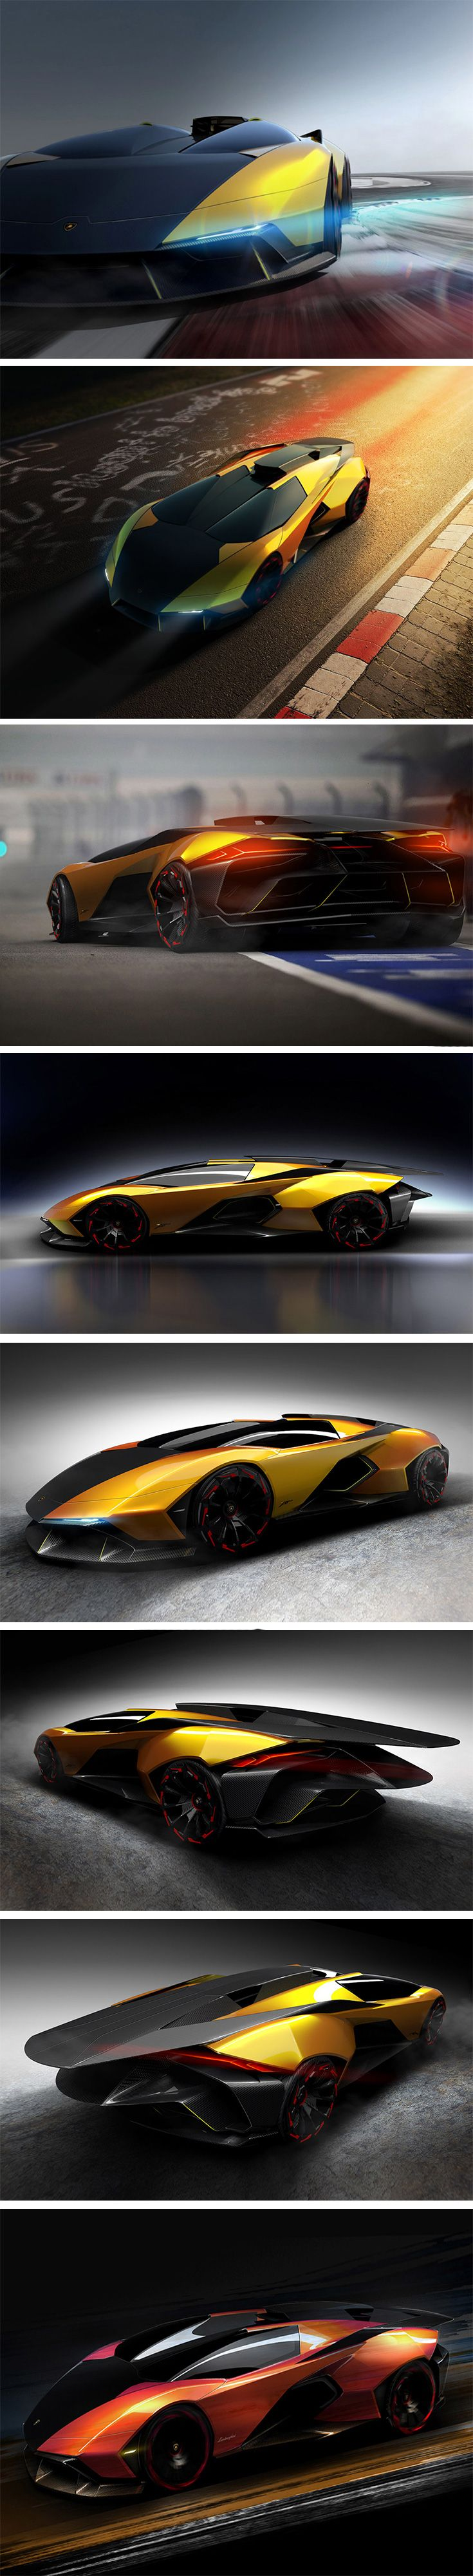 When you anticipate seeing a Lamborghini you expect the extreme and the Apis is no let-down. Named after the most highly regarded bull deity of ancient Egypt, the Apis stands out from other models with a distinct dual-cockpit design that gives driver and passenger entirely unique riding experiences and the aesthetic a two-headed twist.